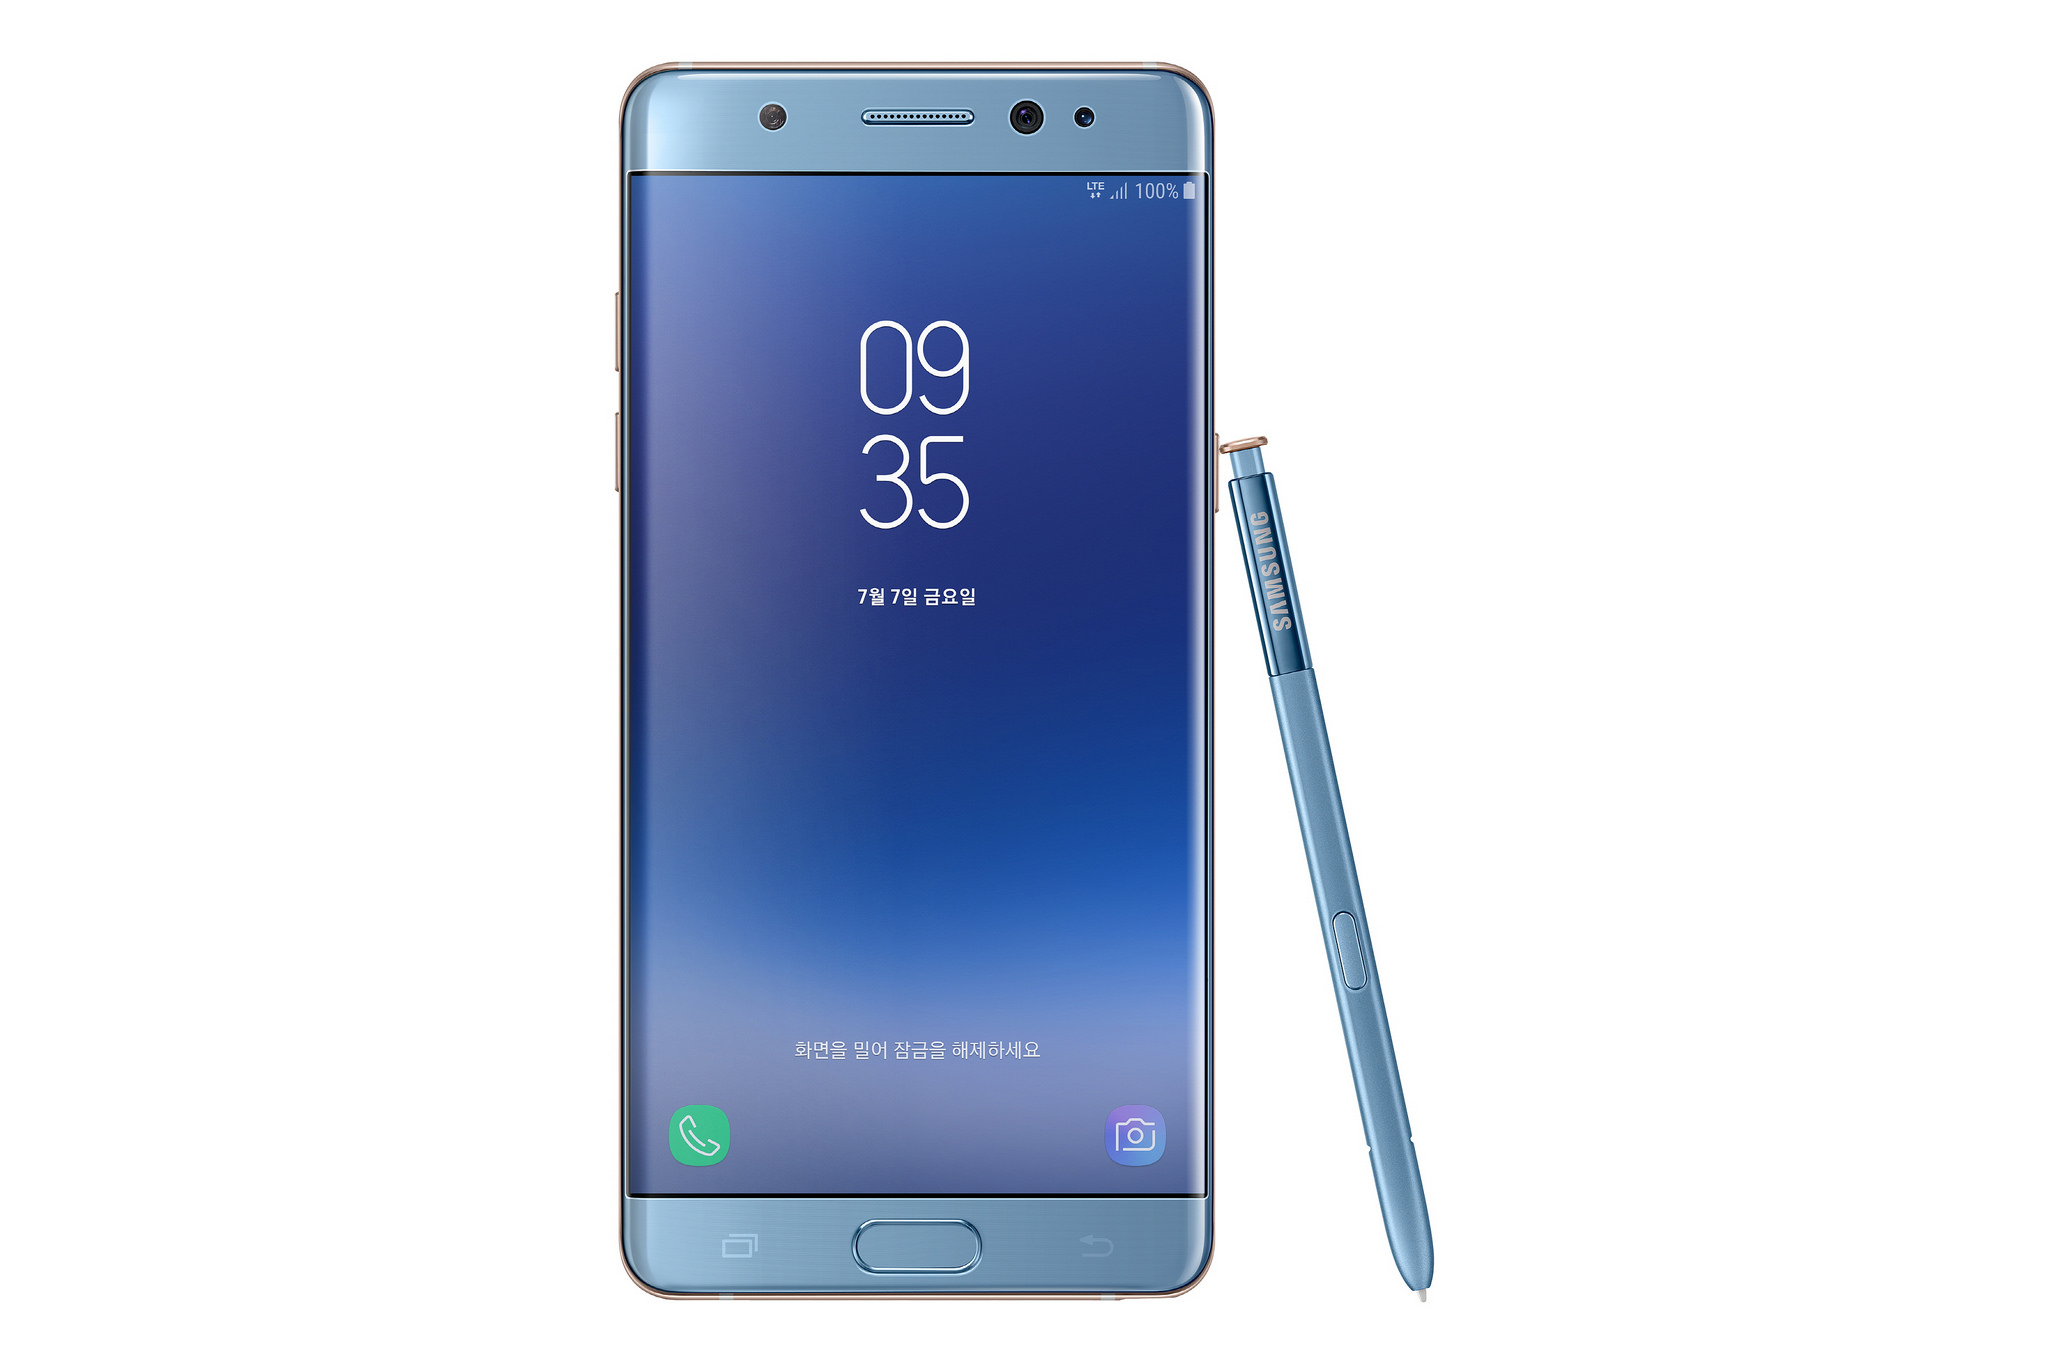 Samsung's Galaxy Note Fan Edition is a refurbished Galaxy